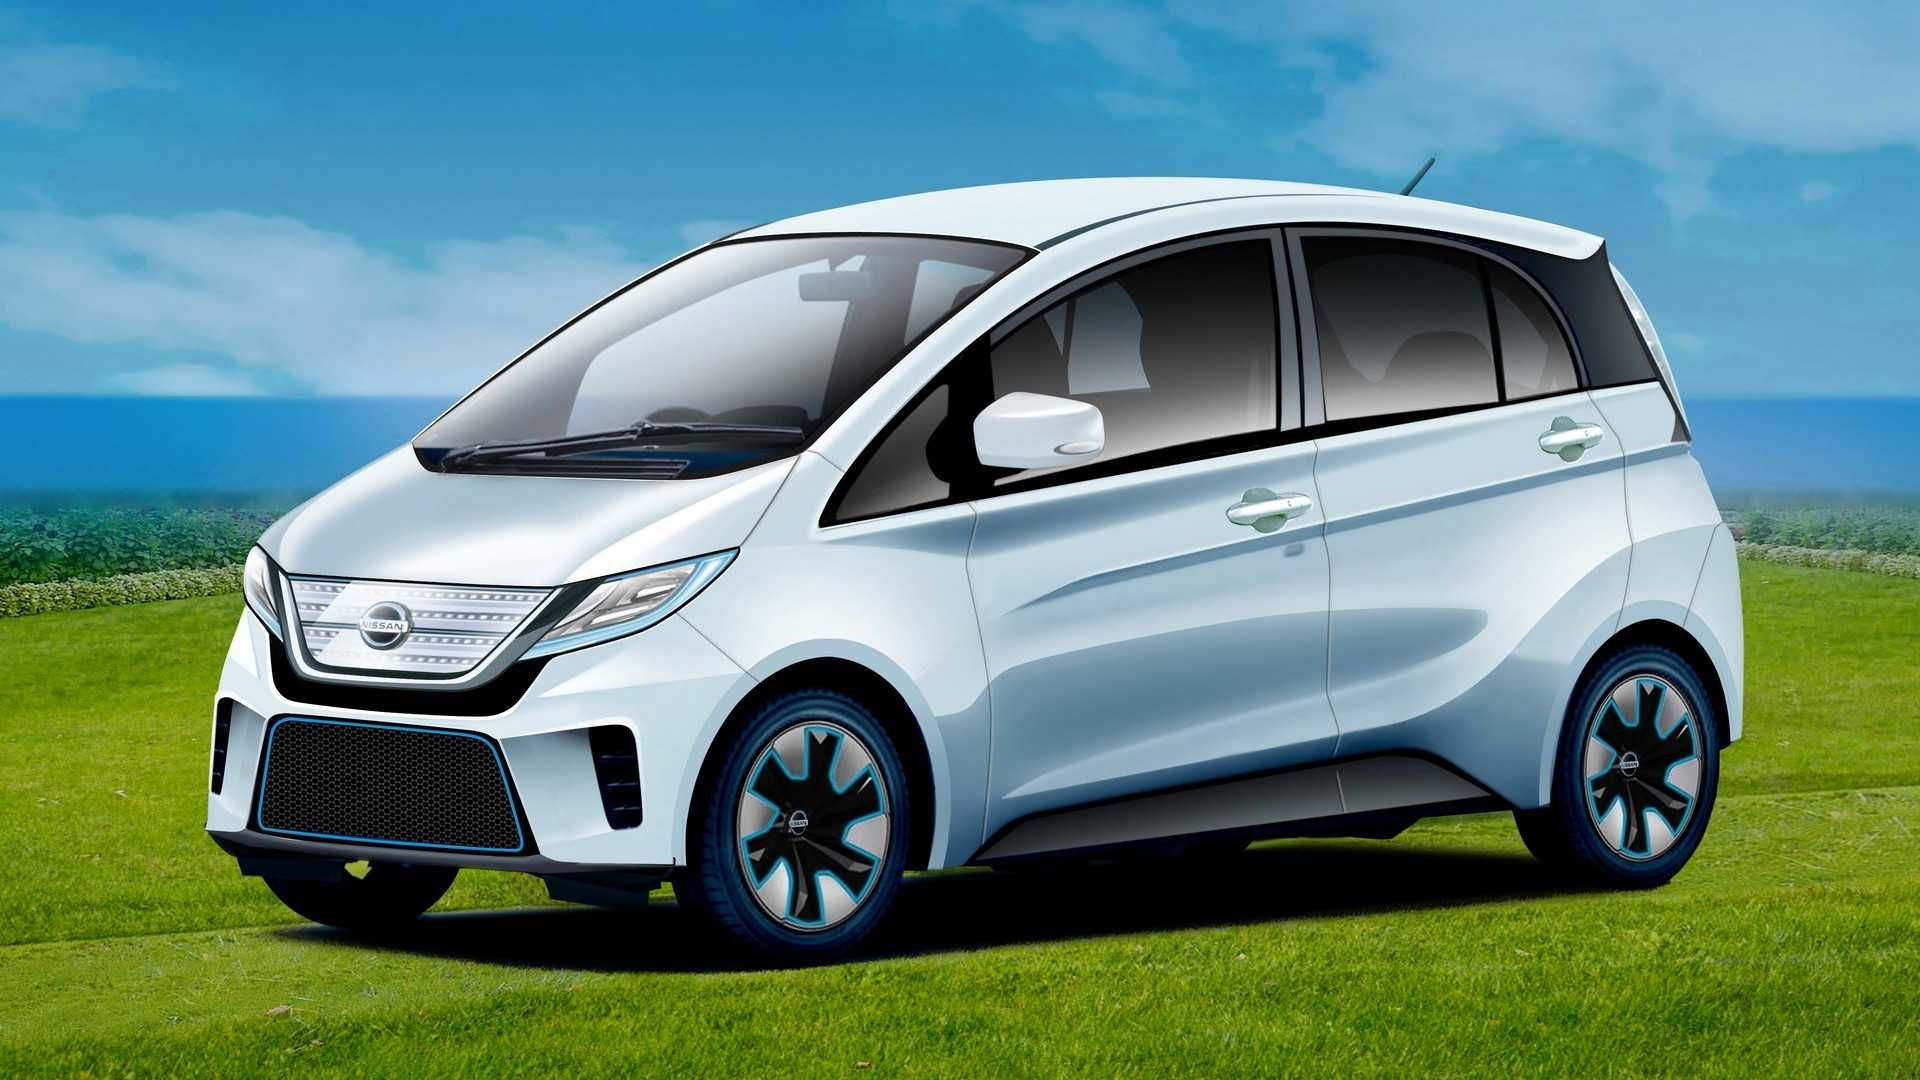 27 New Mitsubishi Electric Vehicle 2020 Research New with Mitsubishi Electric Vehicle 2020